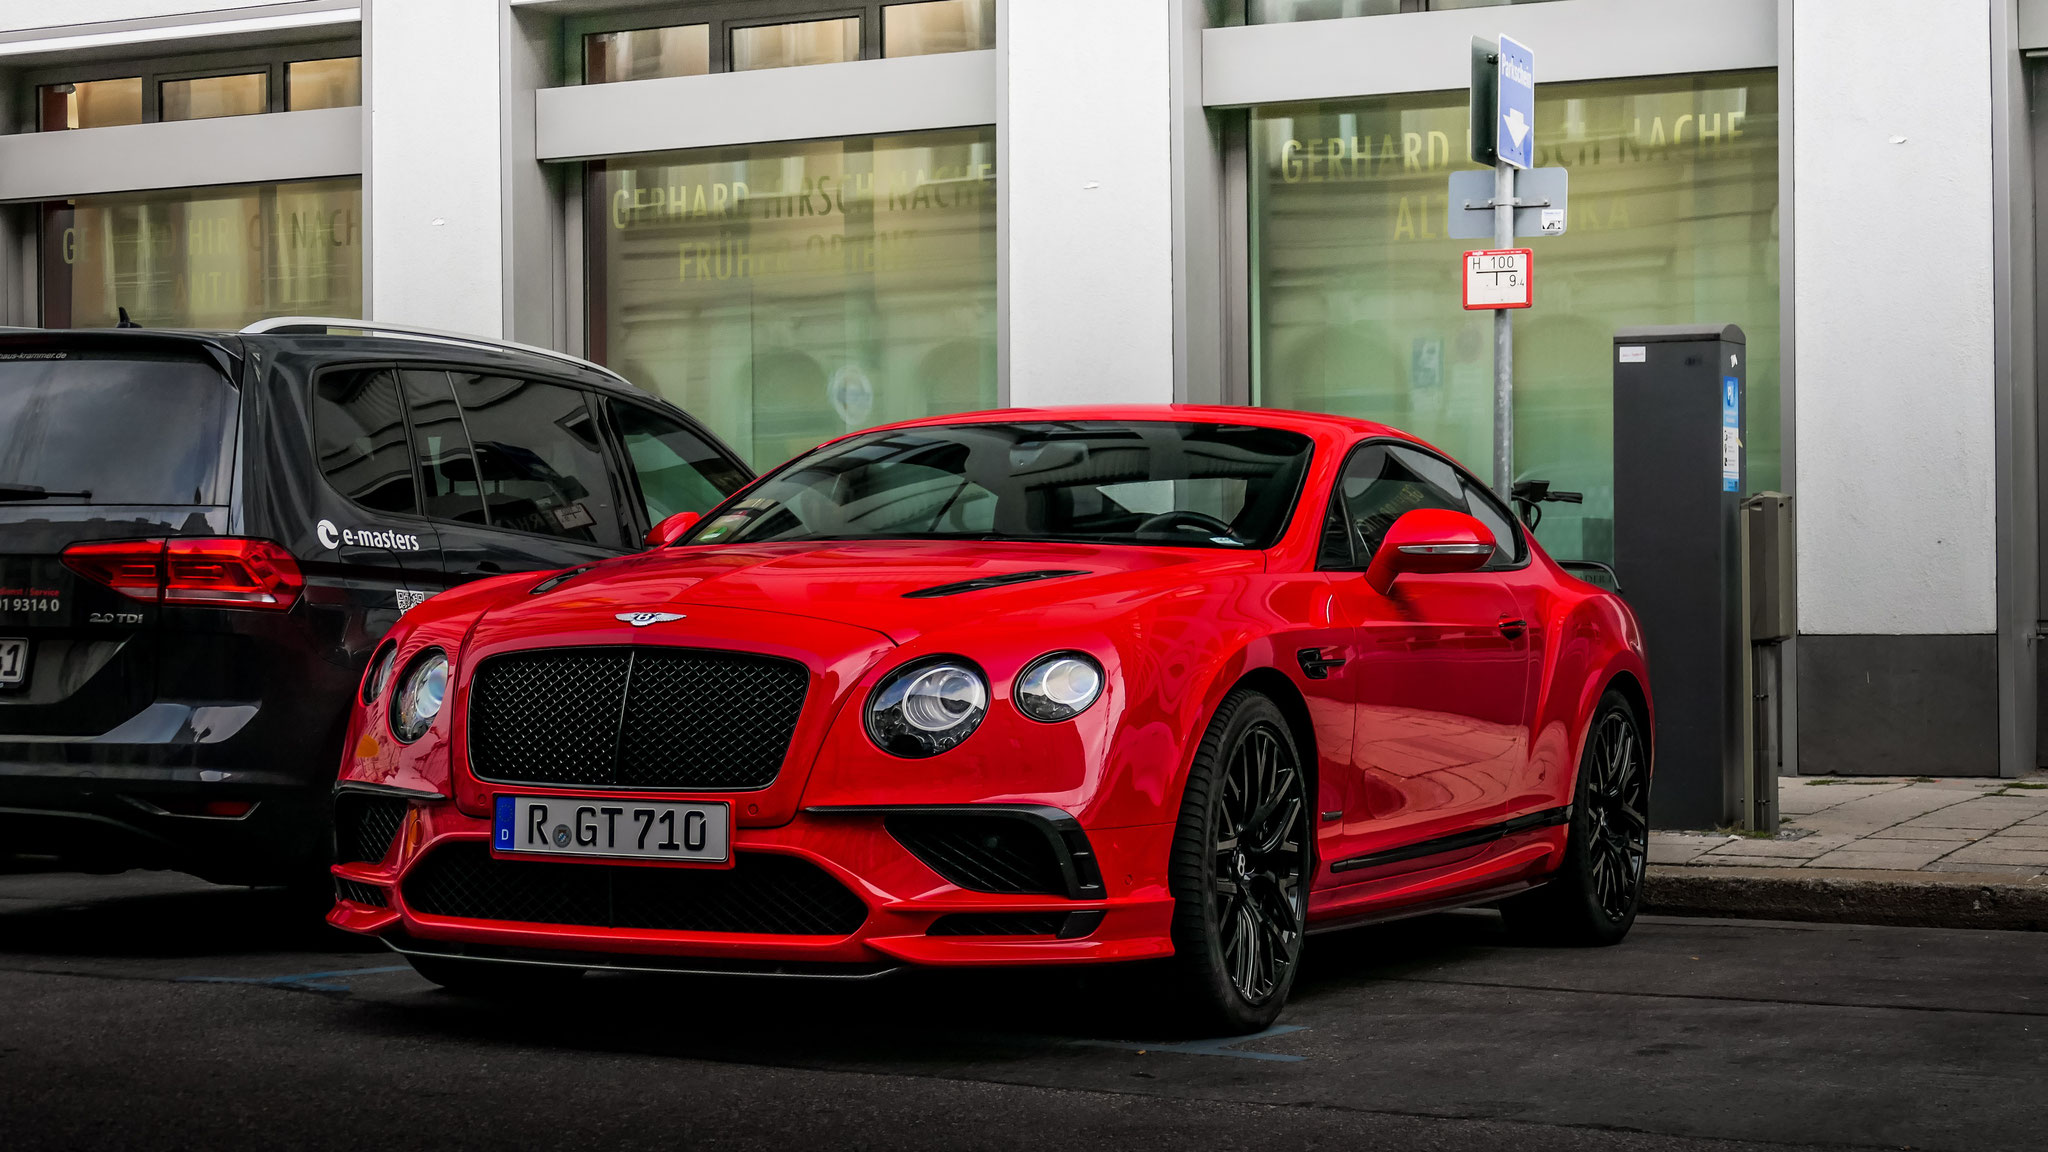 Bentley Continental GT Supersports - R-GT-710